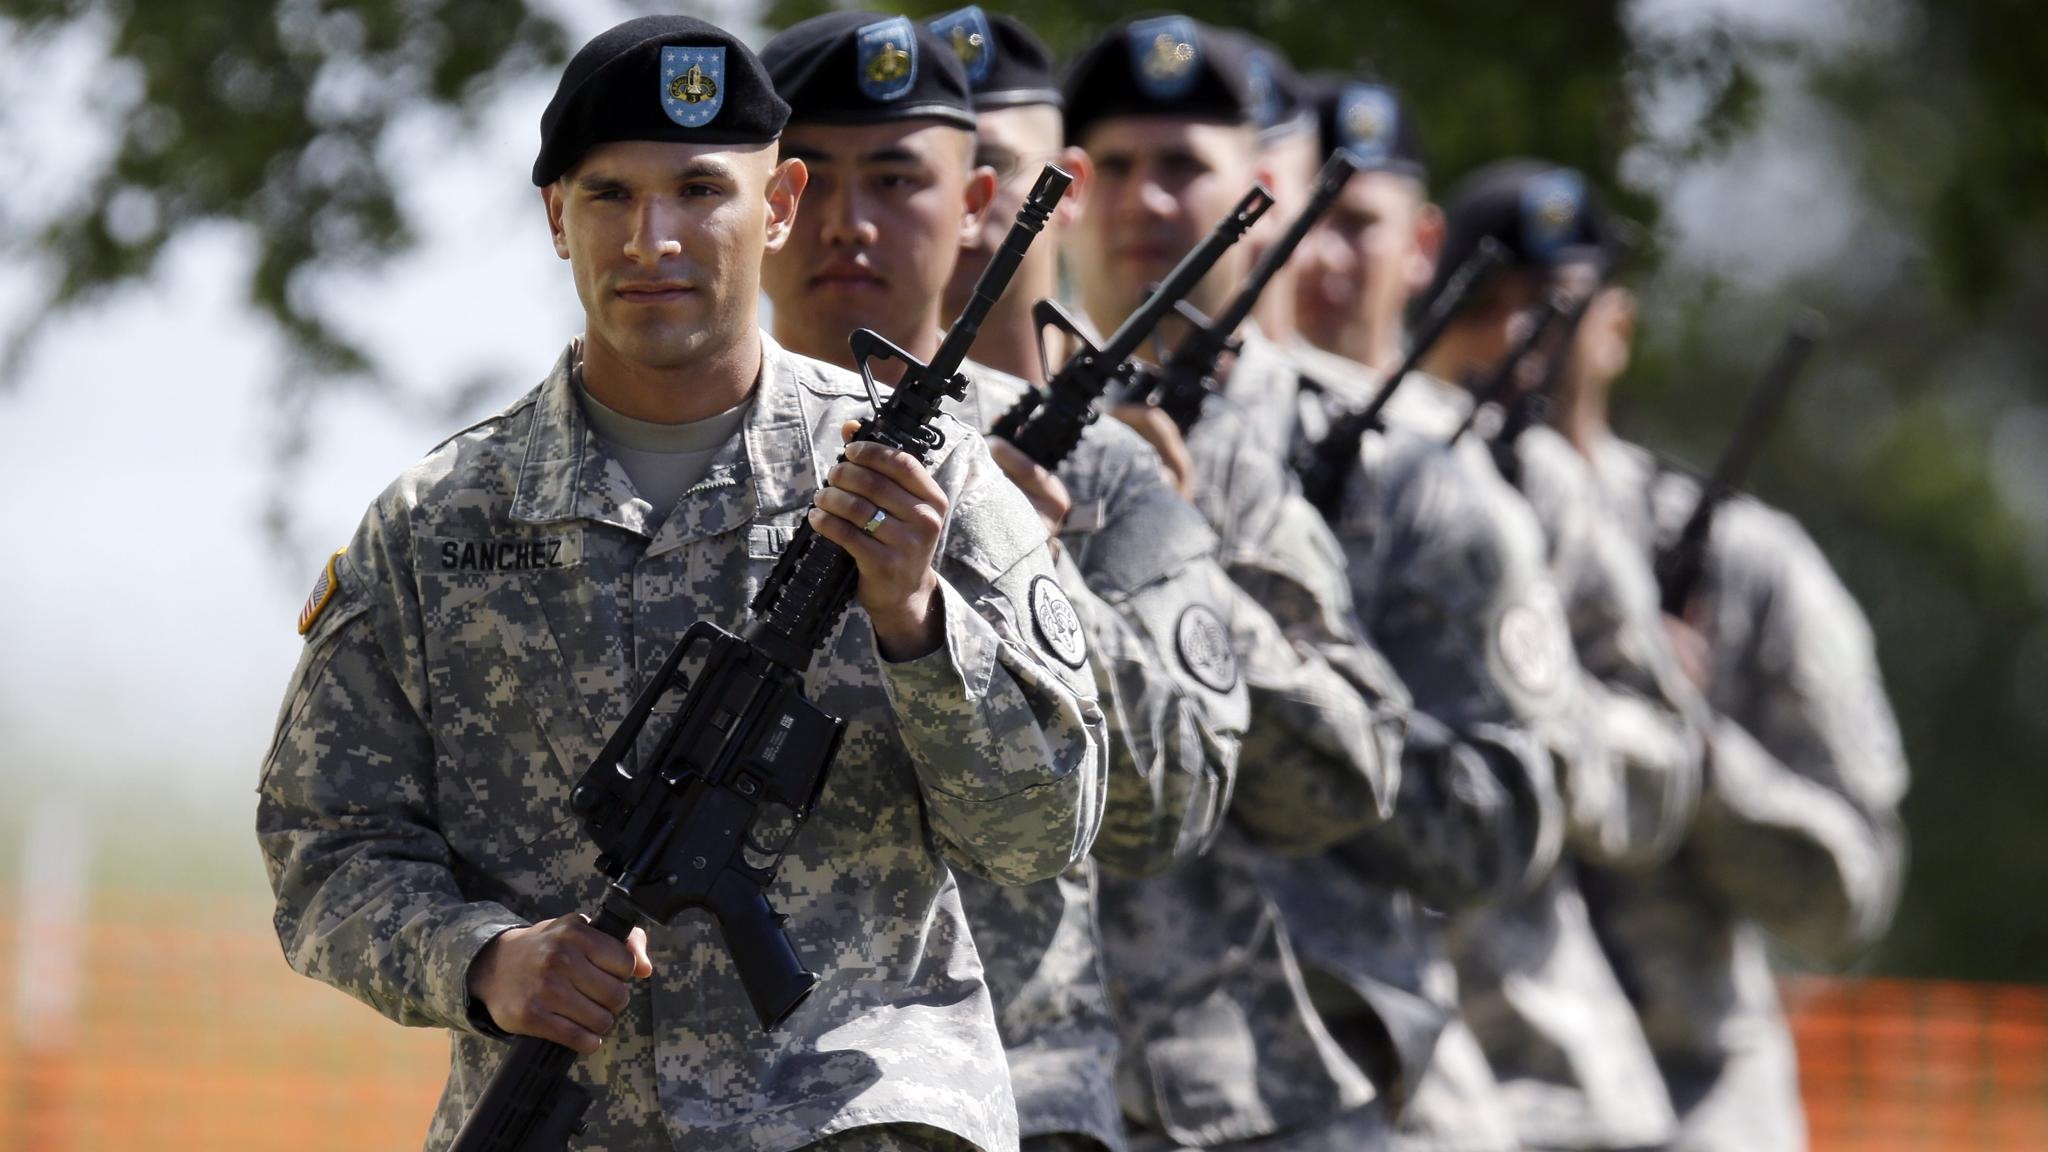 Soldiers prepare for a service for the four killed and more than dozen injured in last week's shooting rampage at Fort Hood, Texas, Wednesday, April 9, 2014, at Fort Hood. President Barack Obama will attend the ceremony. (AP Photo/Eric Gay)